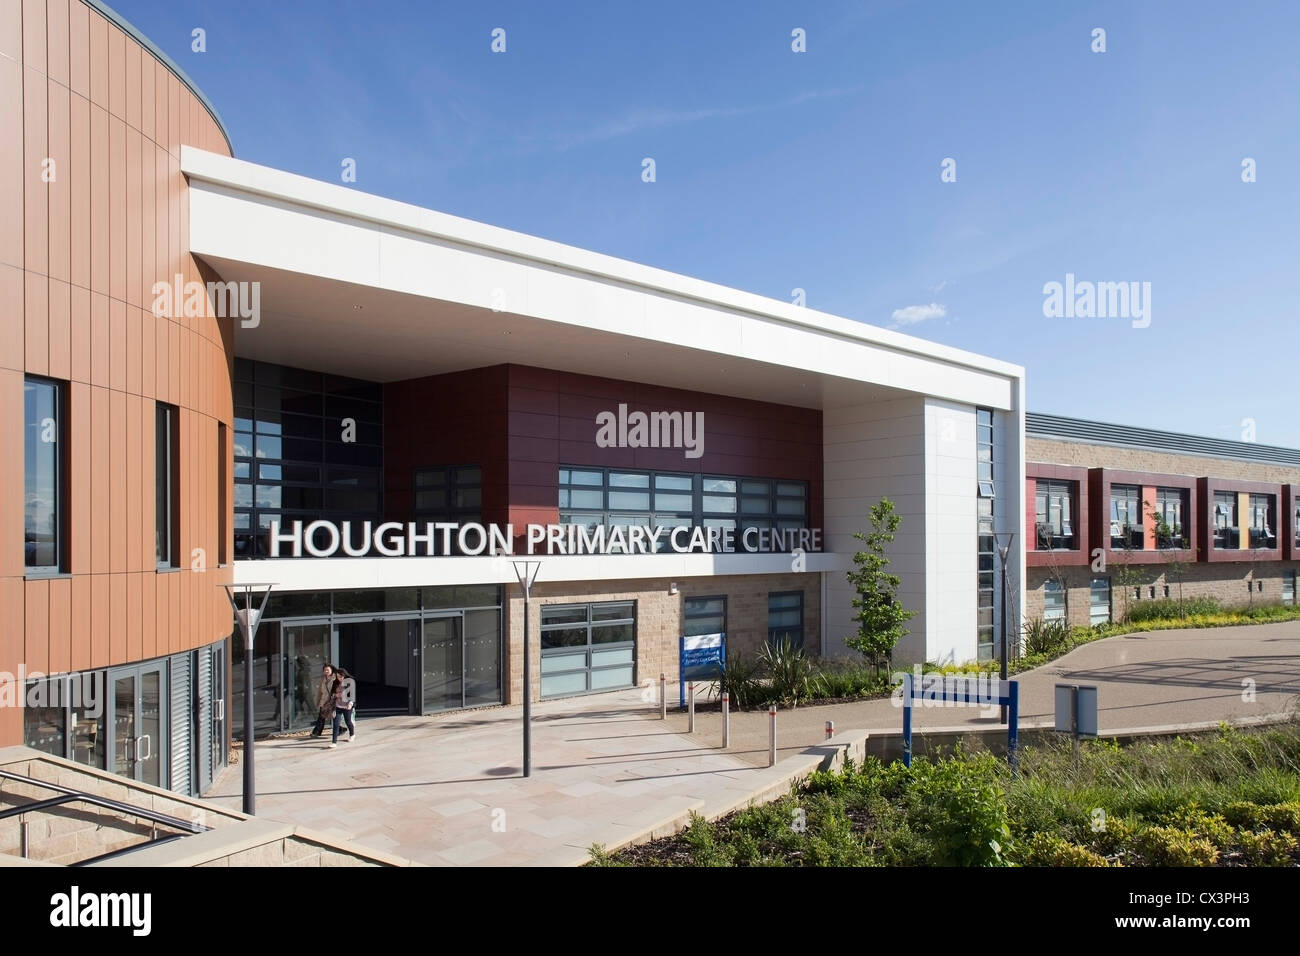 Houghton Primary Care Centre, Houghton Le Spring, United Kingdom. Architect P+HS Architects, 2011. - Stock Image